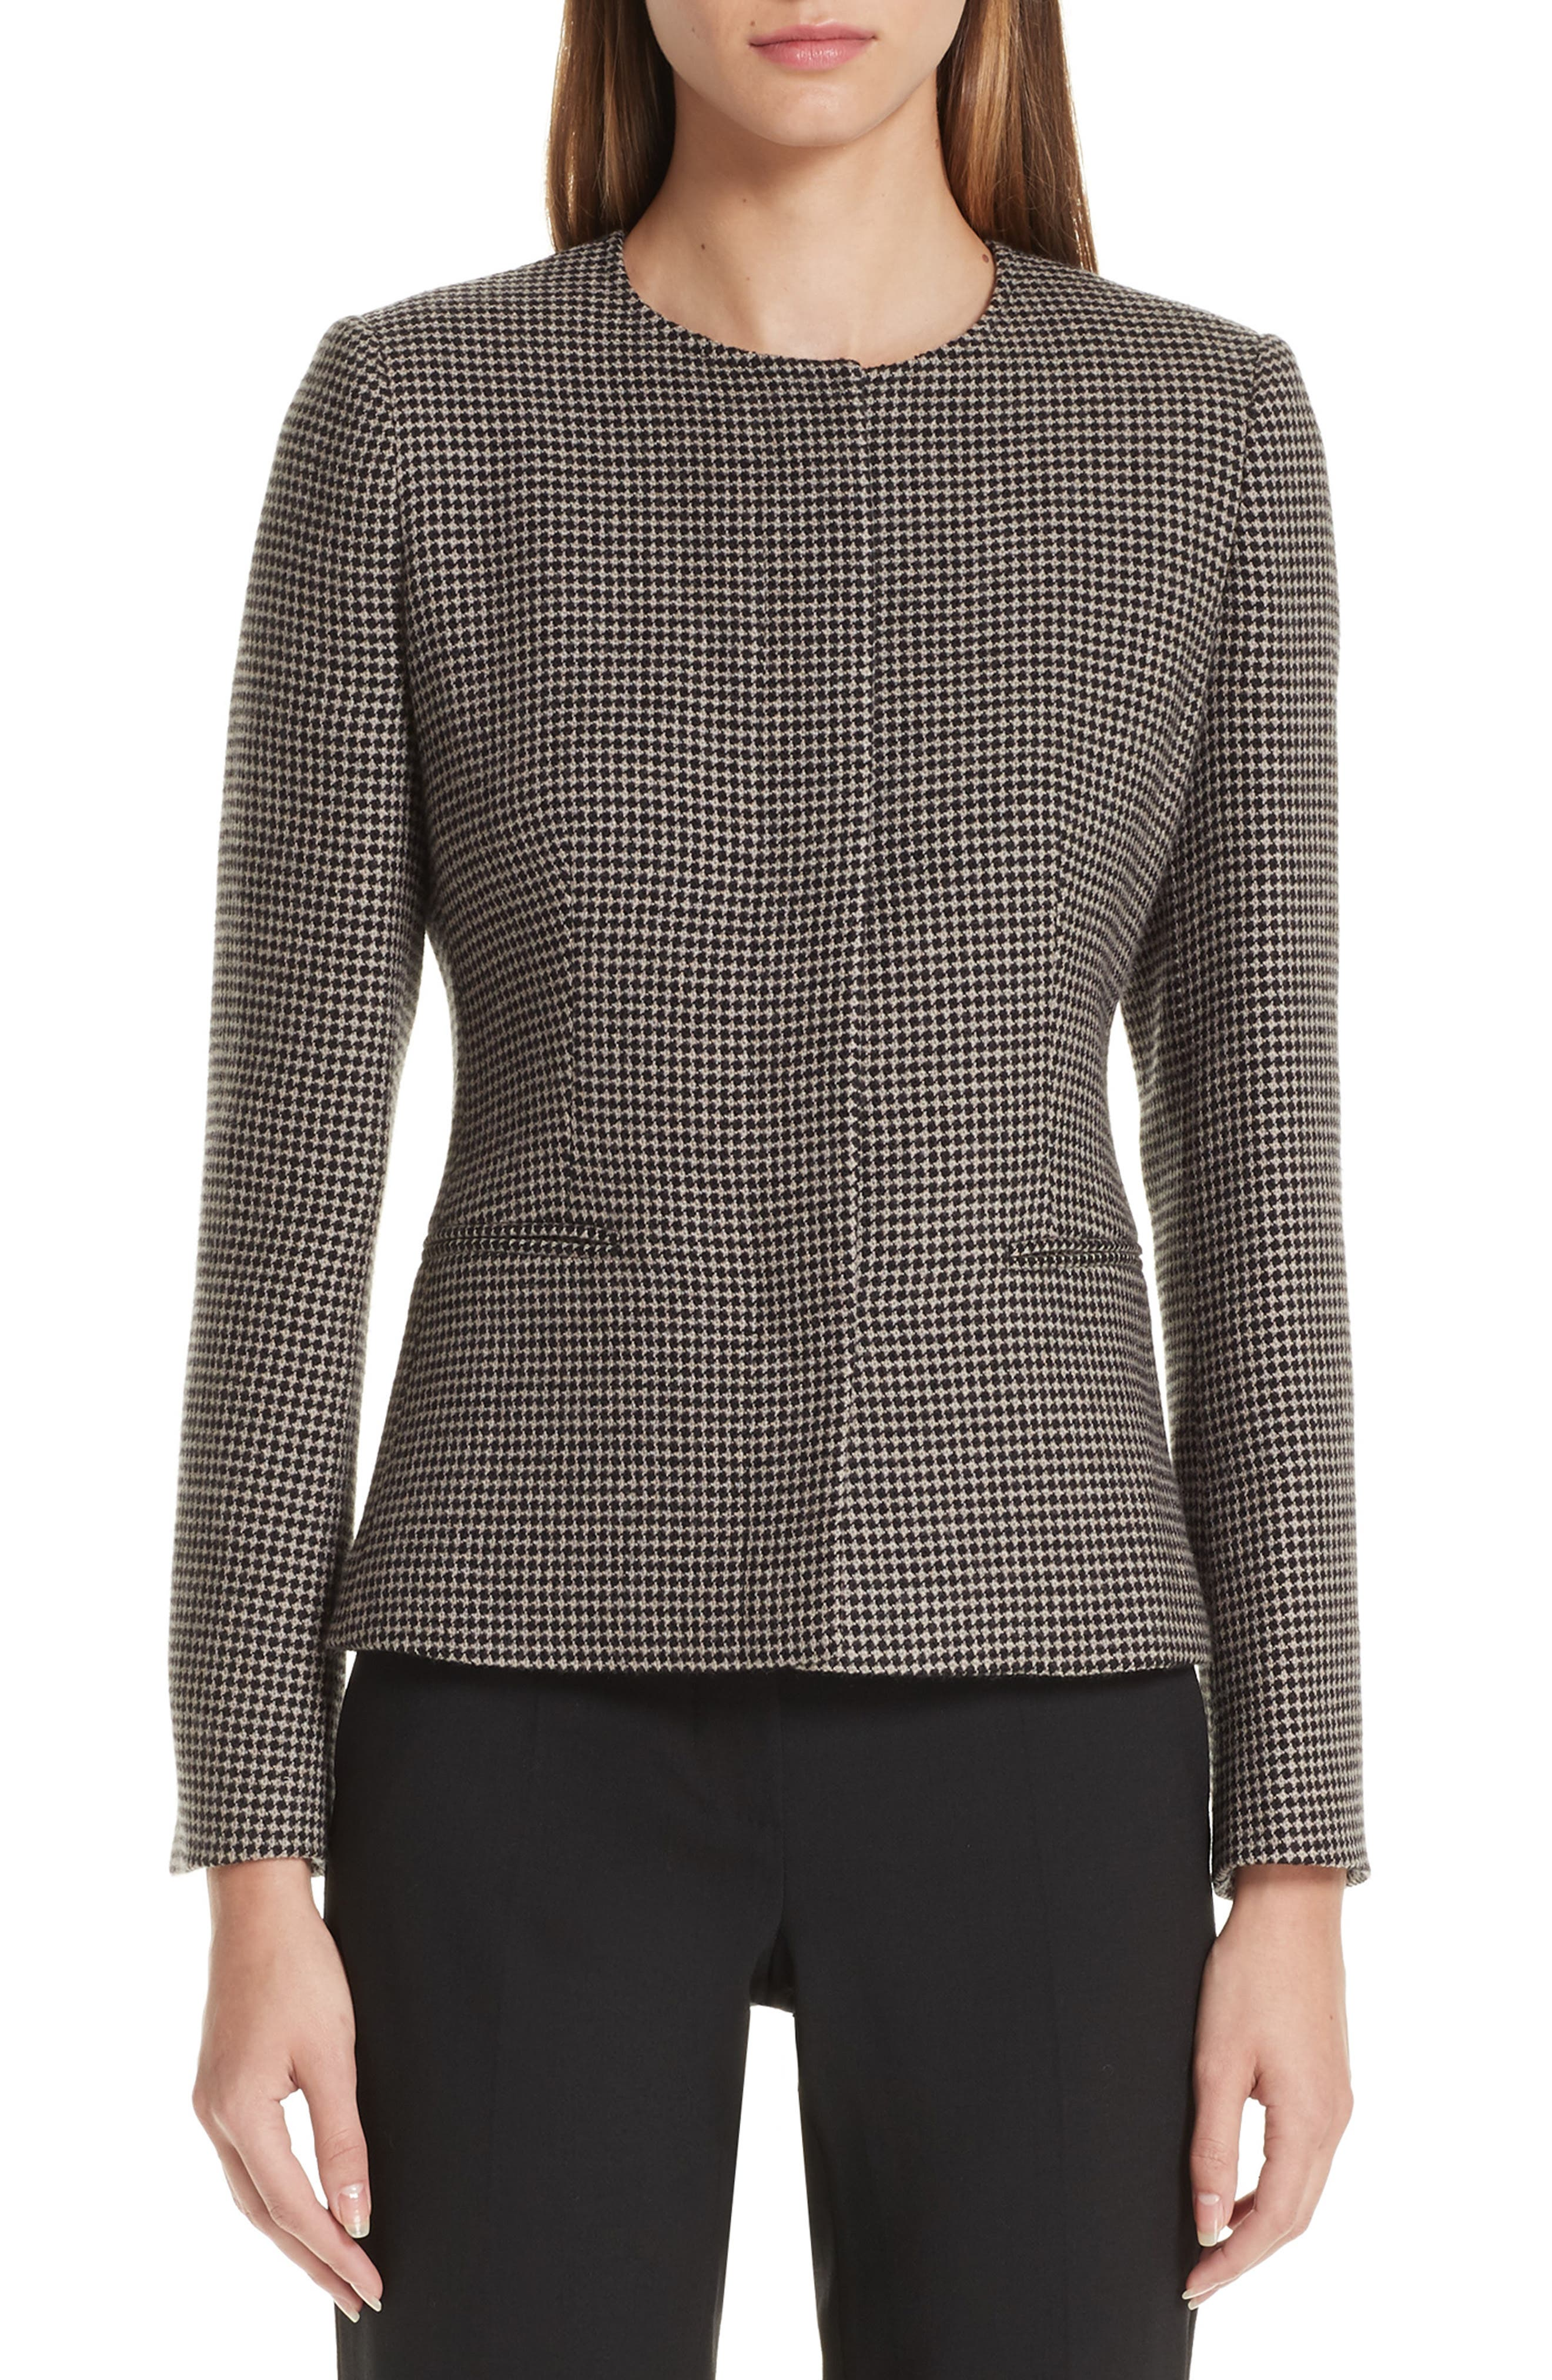 Spigola Wool & Cashmere Jacket,                             Main thumbnail 1, color,                             TURTLEDOVE